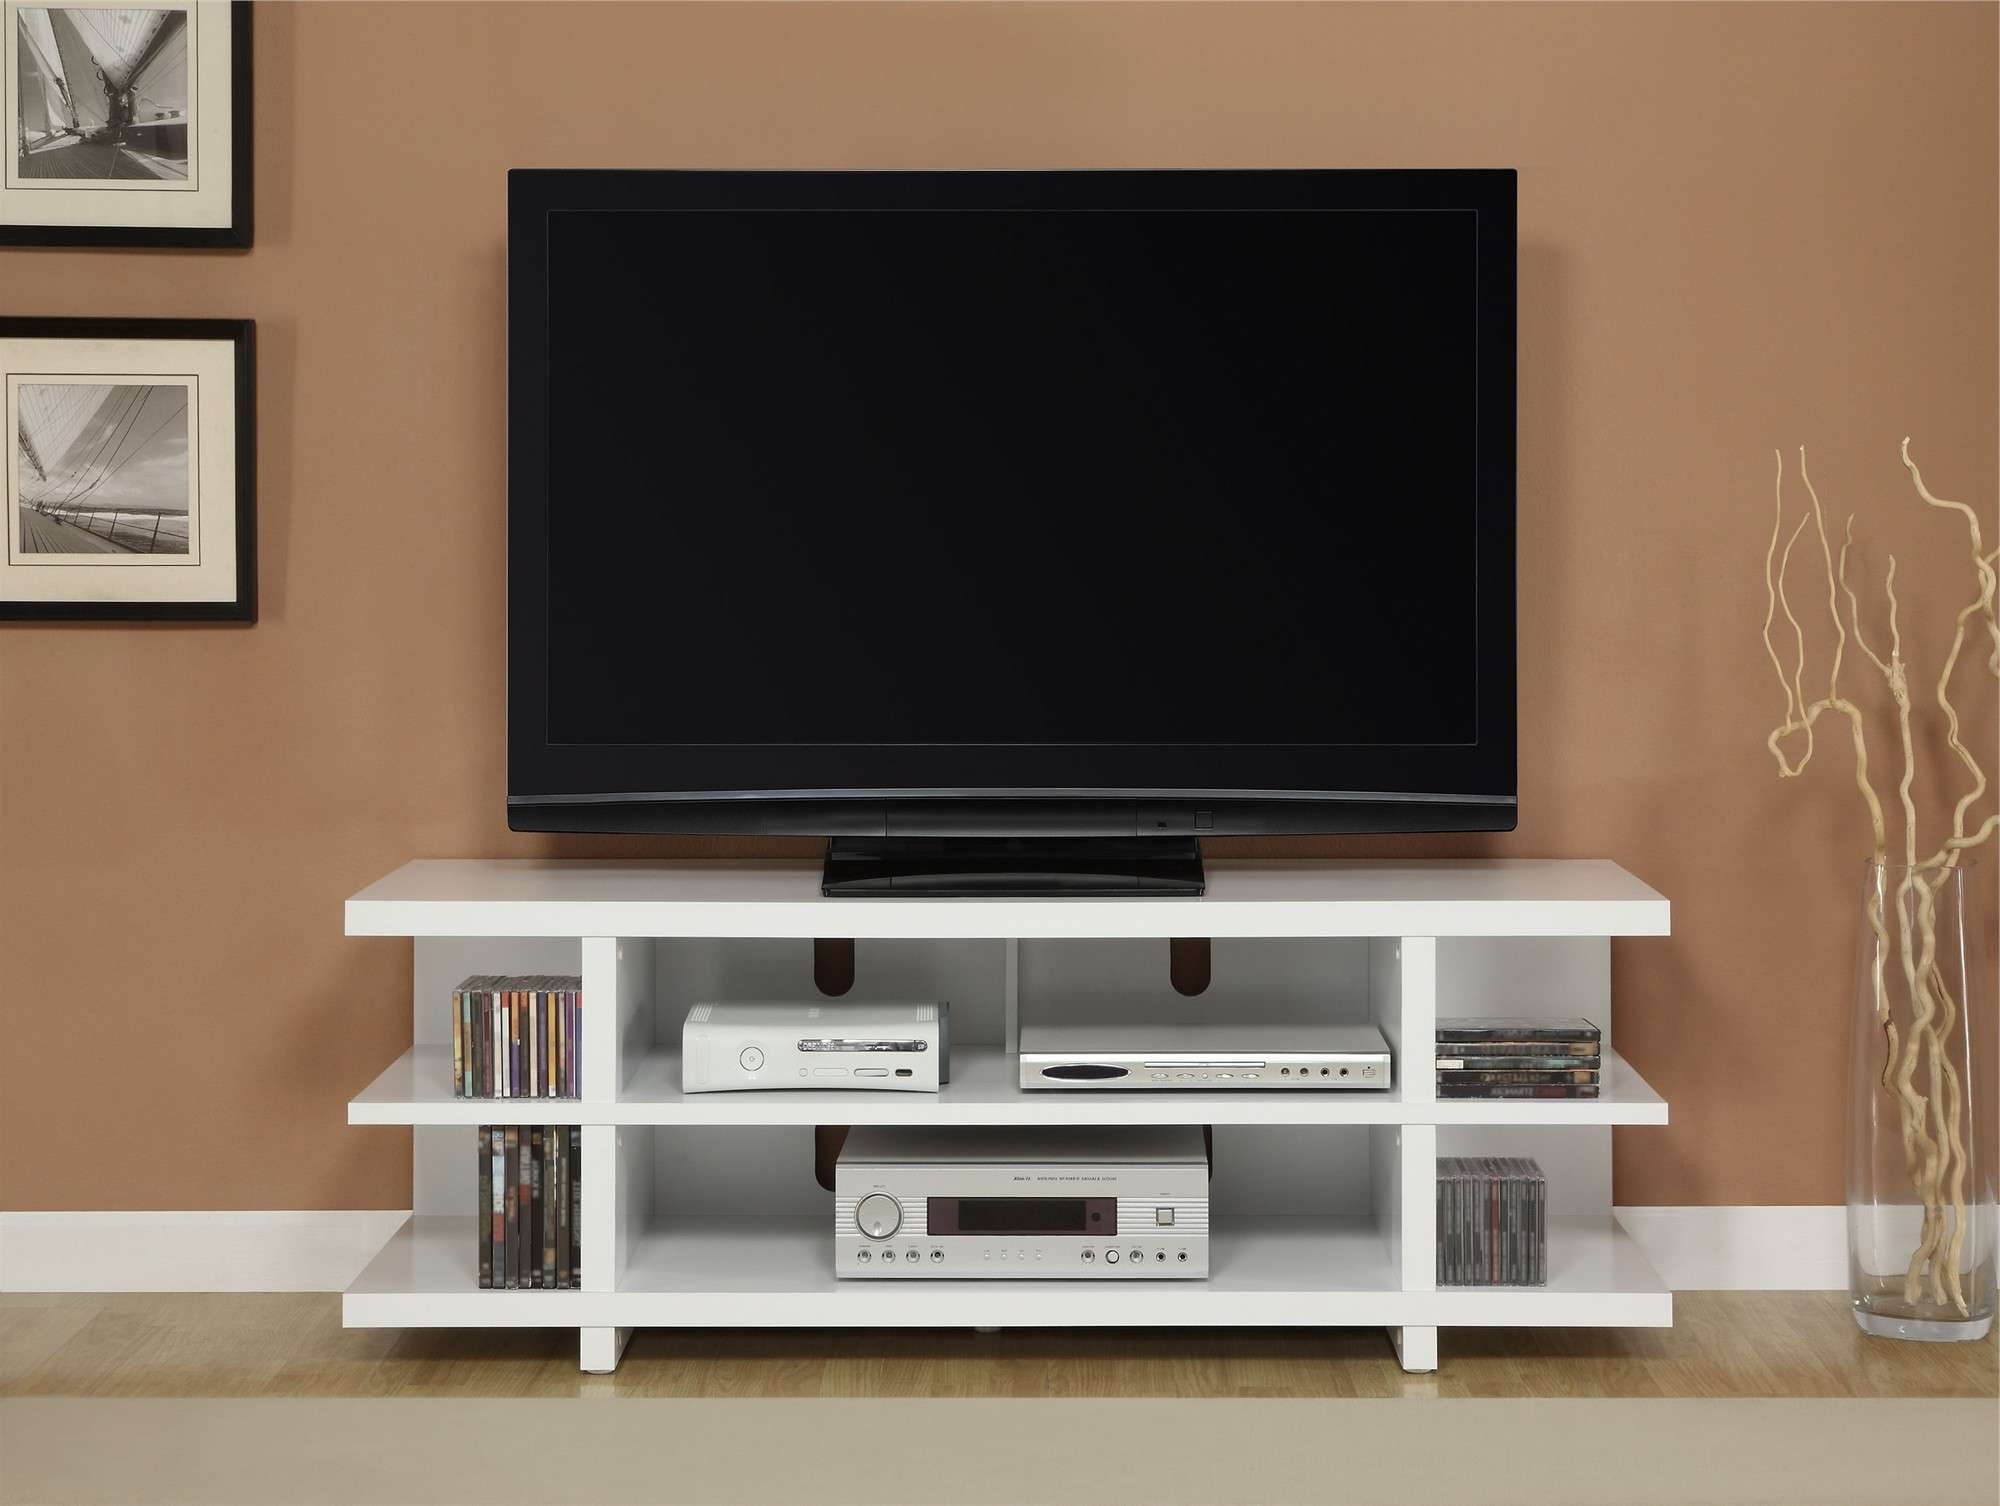 White Stained Wooden Tv Stand Having Several Open Shelves For For White Tv Stands For Flat Screens (View 5 of 20)